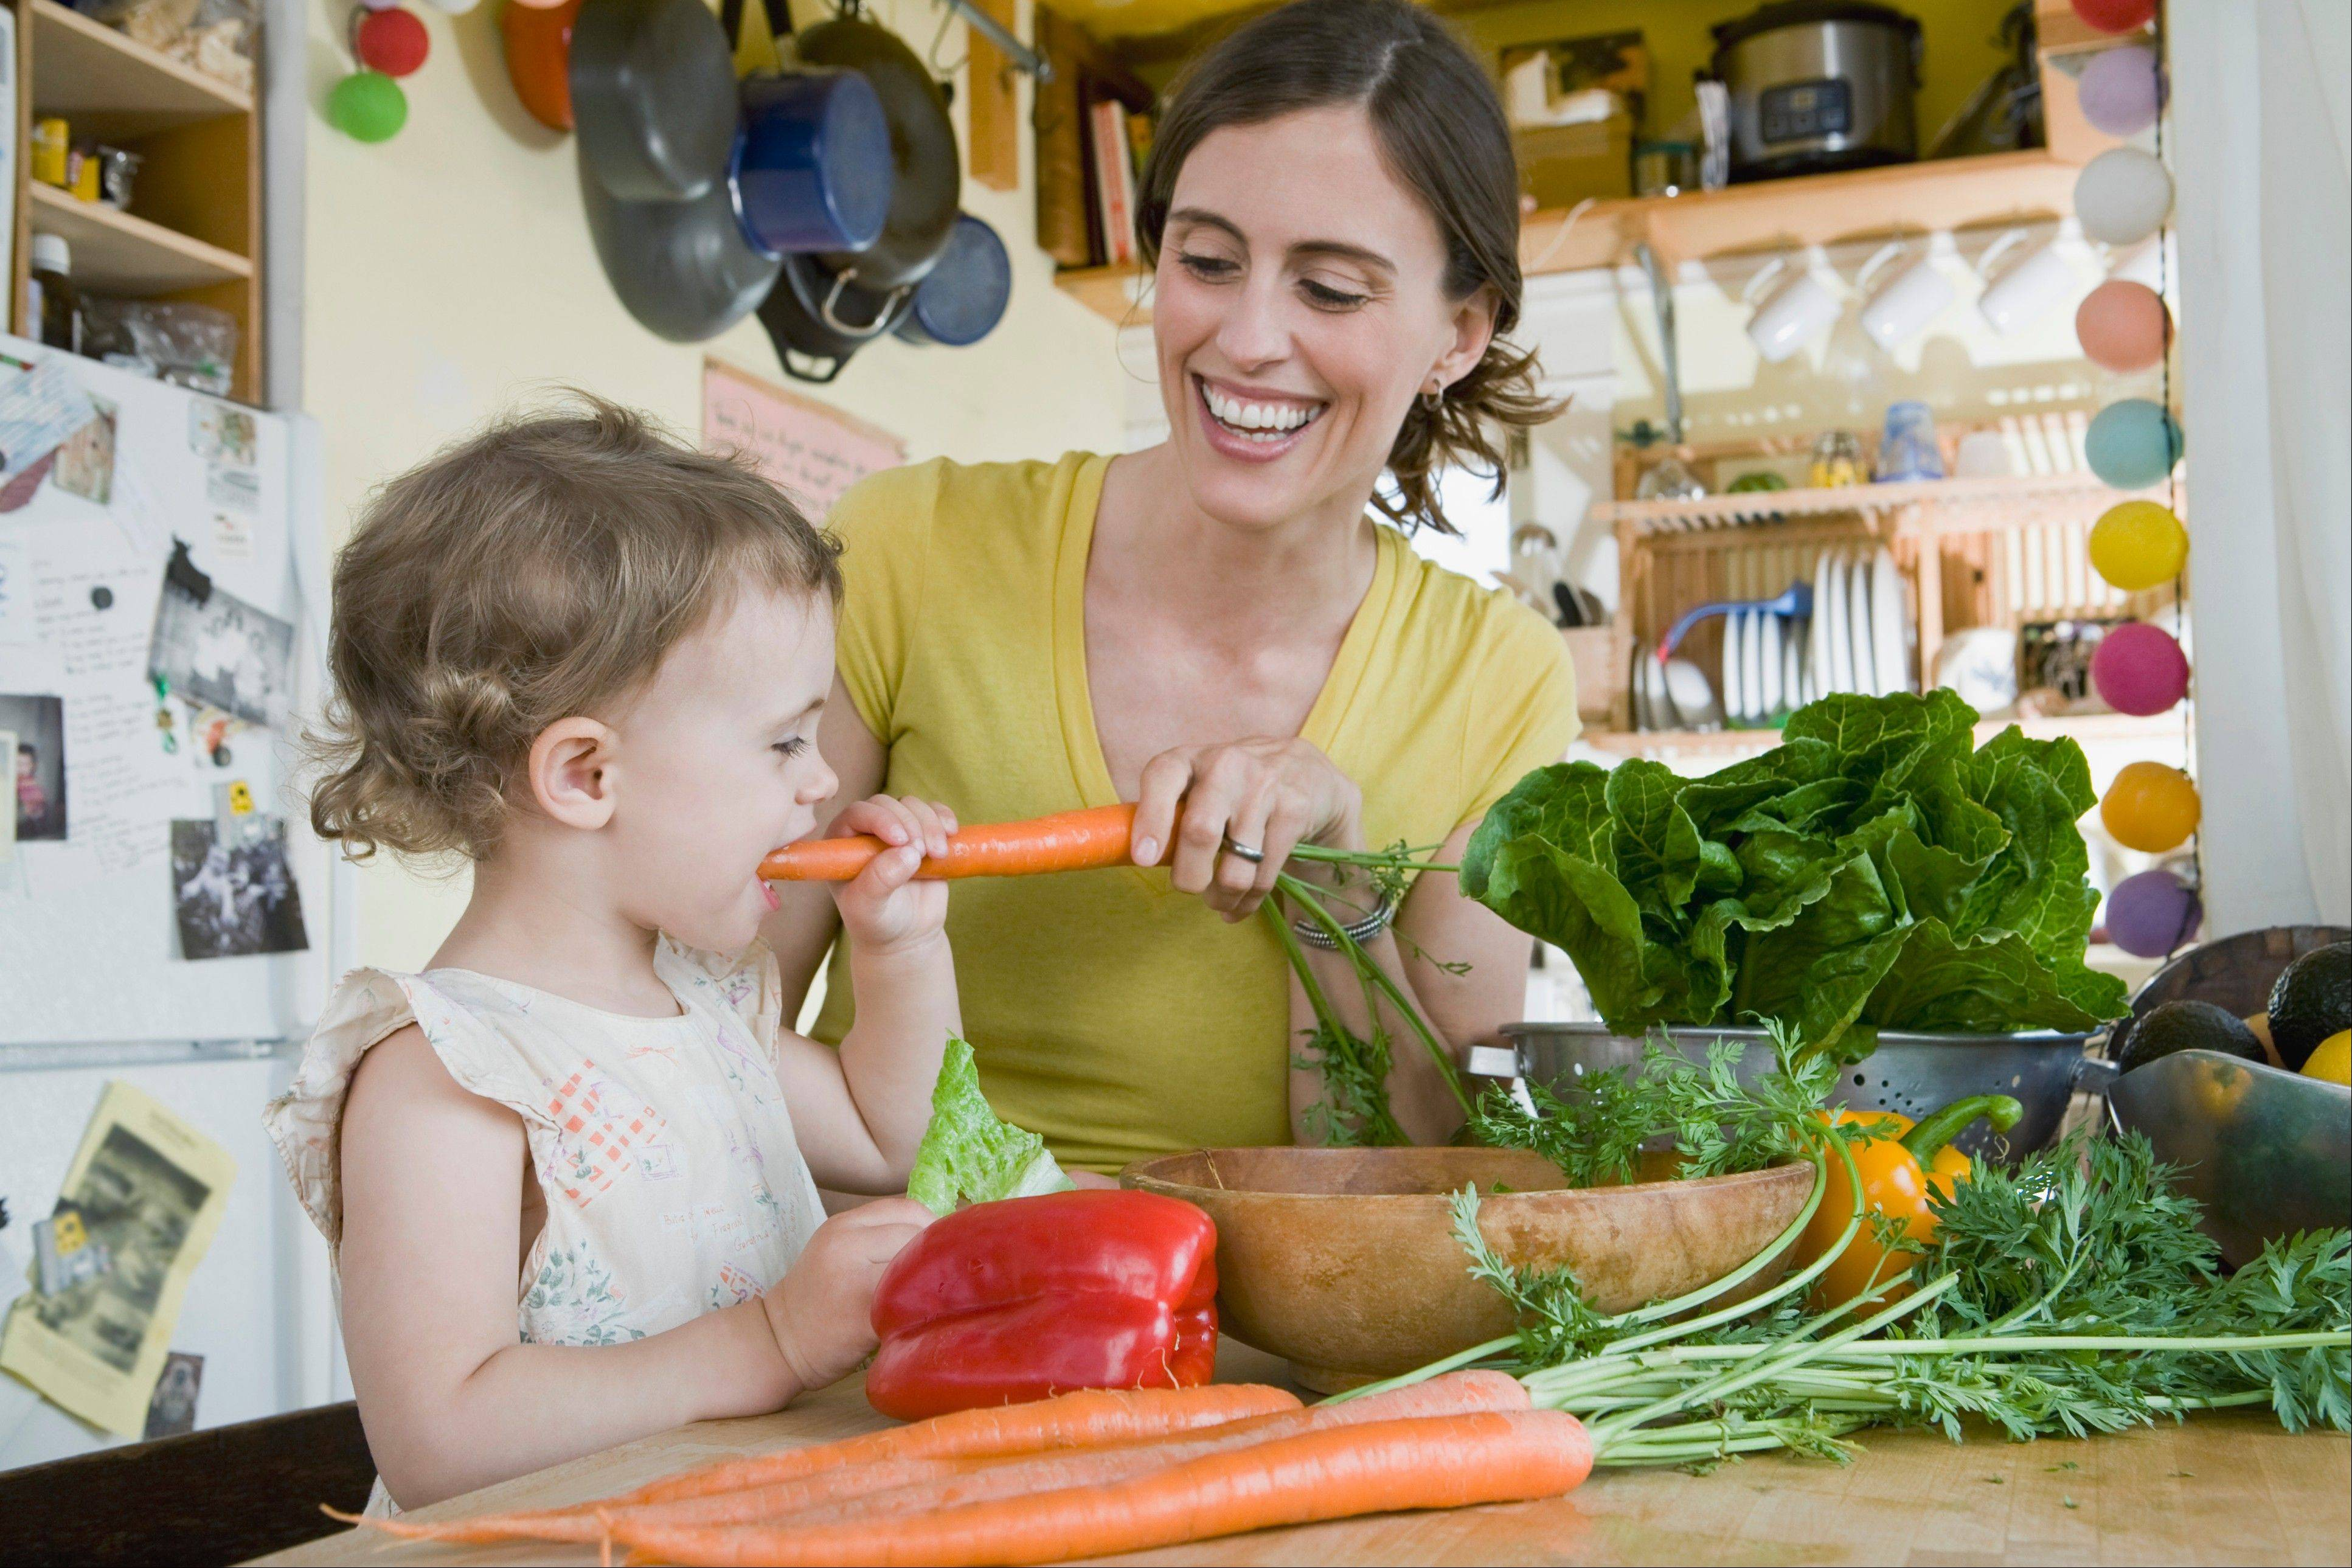 It's good to have vegetables on hand to offer your children when they need a snack, or want seconds at dinner.